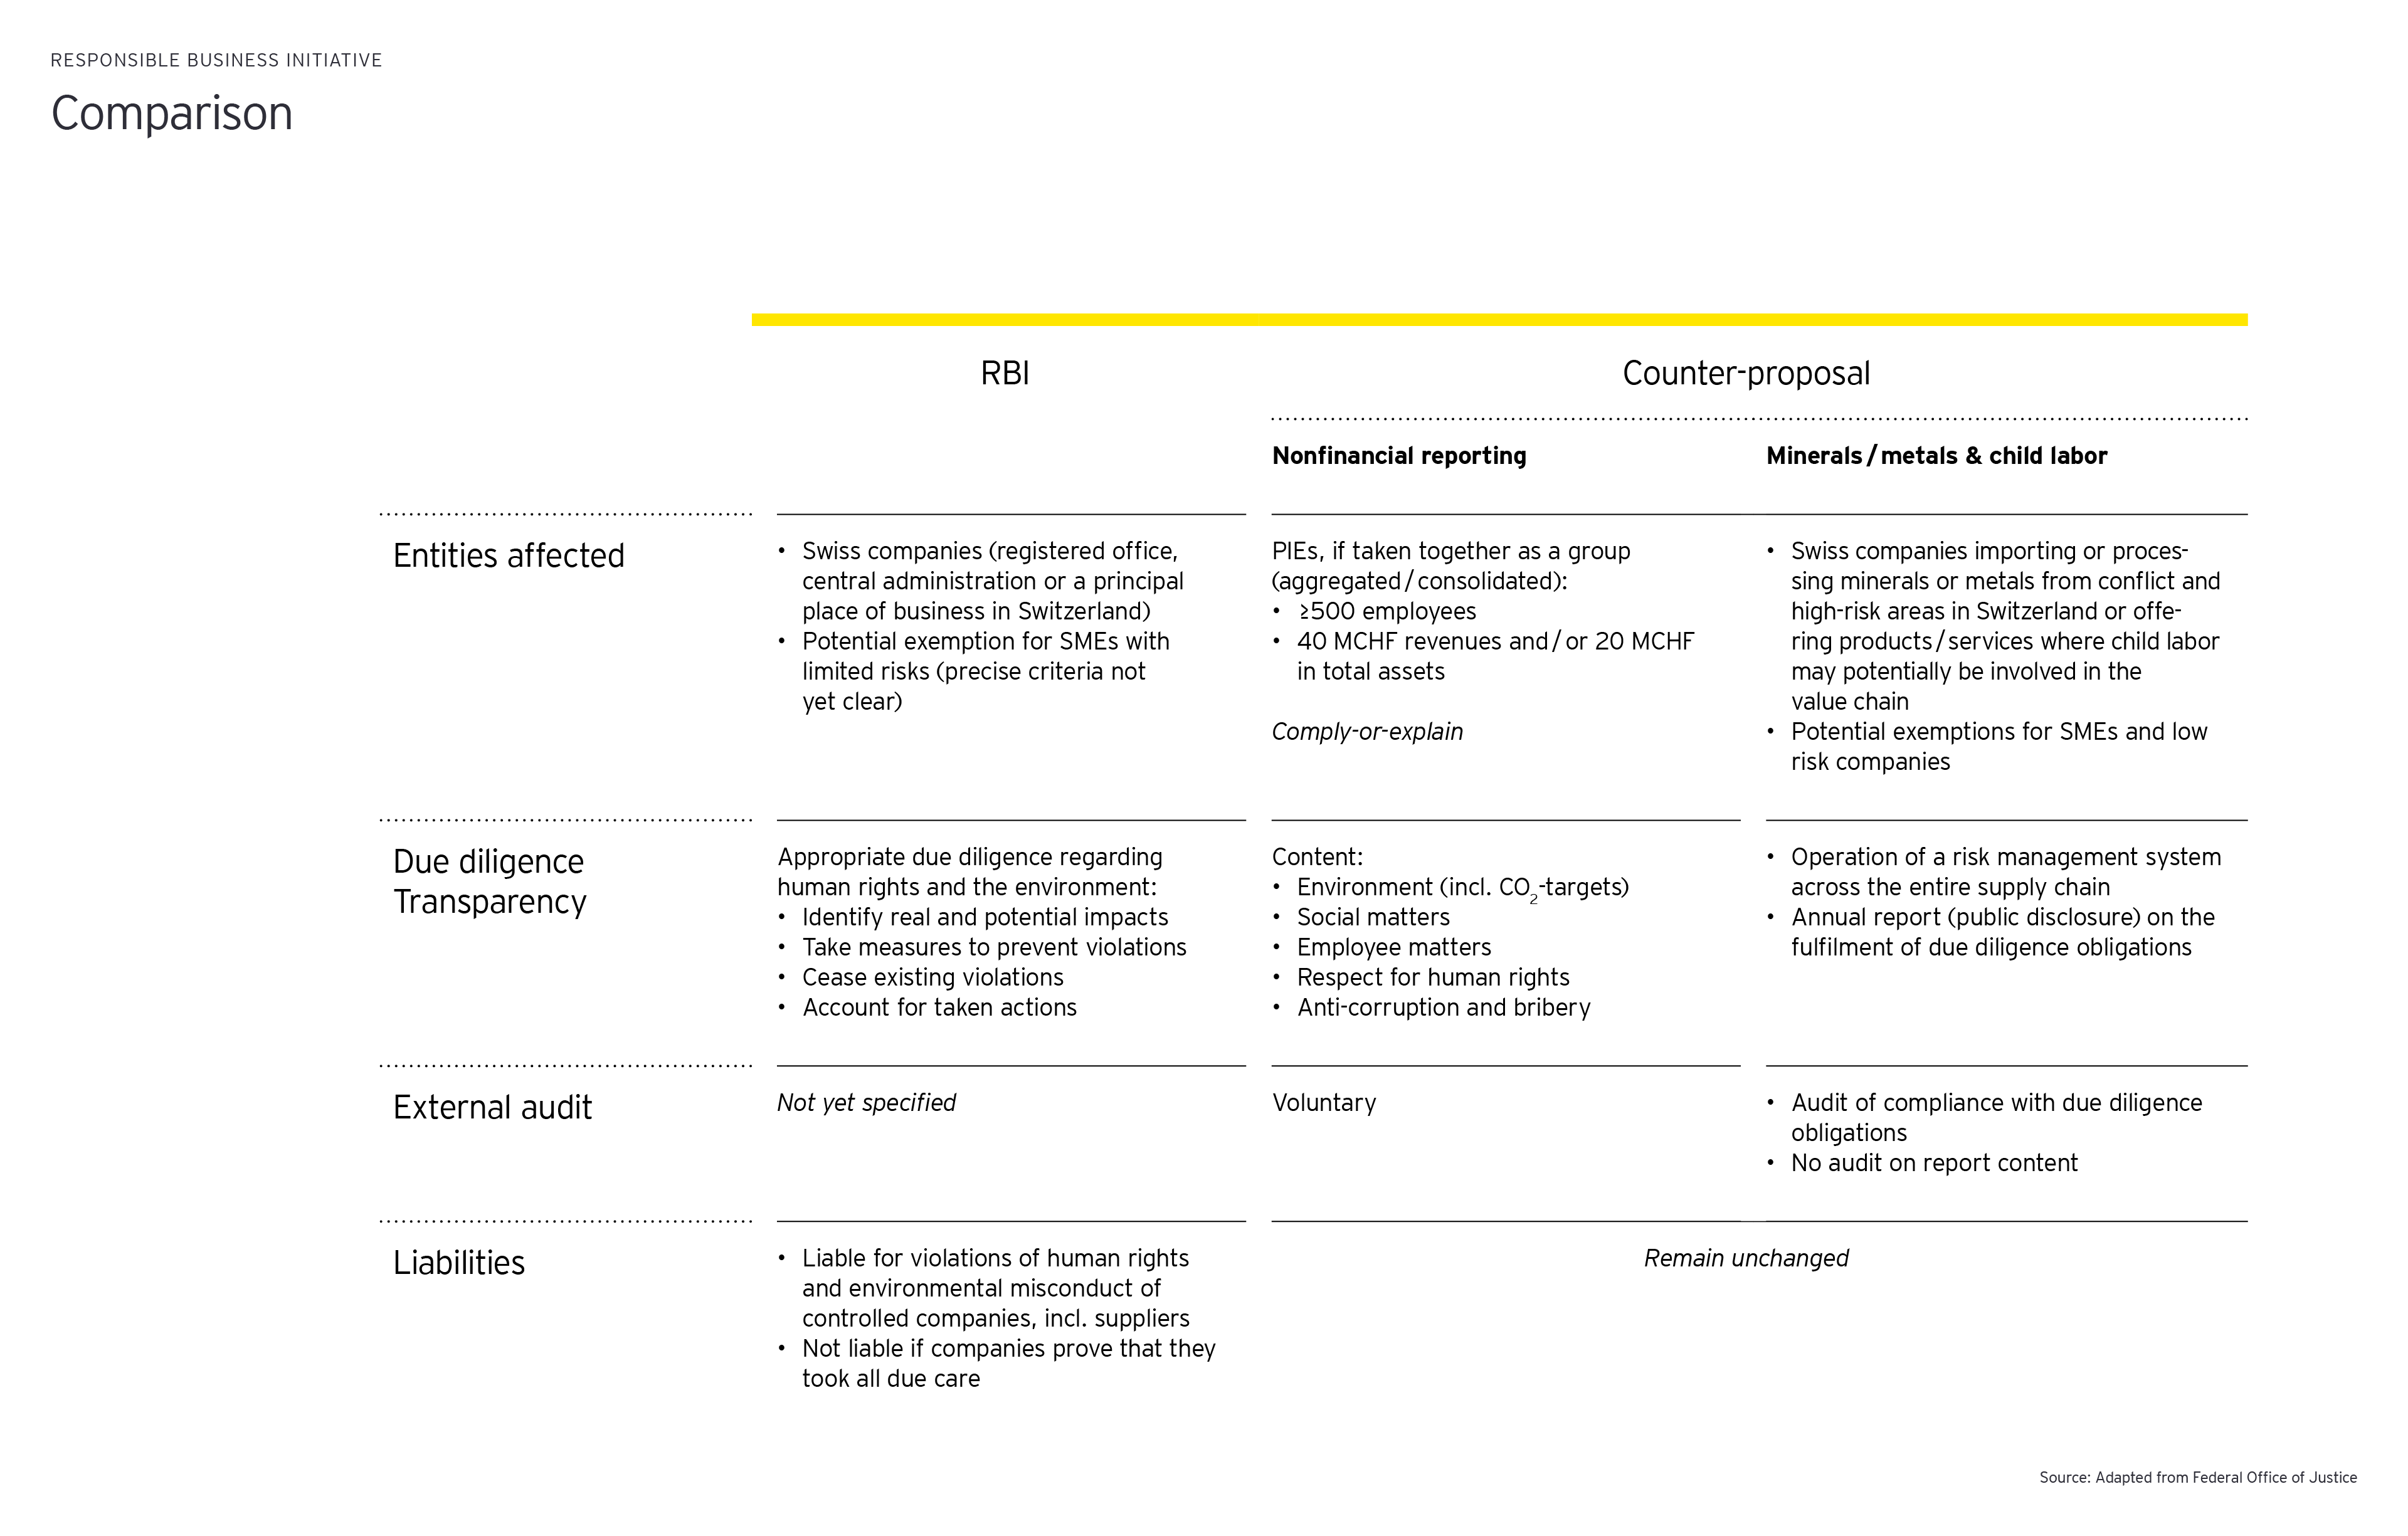 Comparison of Responsible Business Initiative